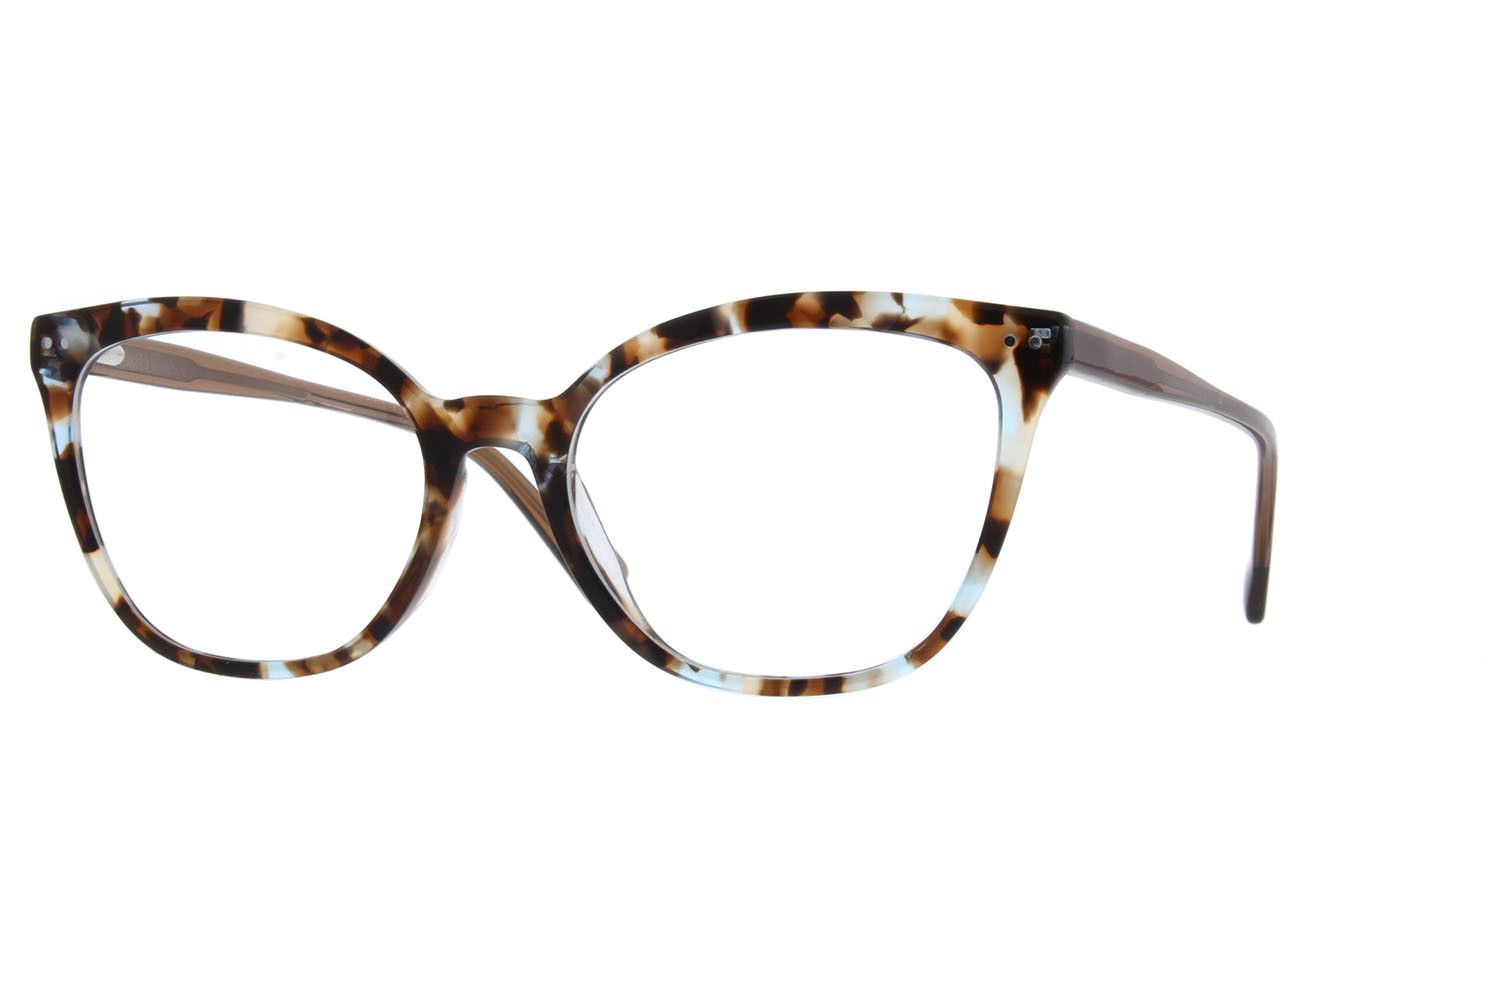 492dec2e3c3 Zenni Womens Cat-Eye Prescription Eyeglasses Tortoiseshell Plastic ...